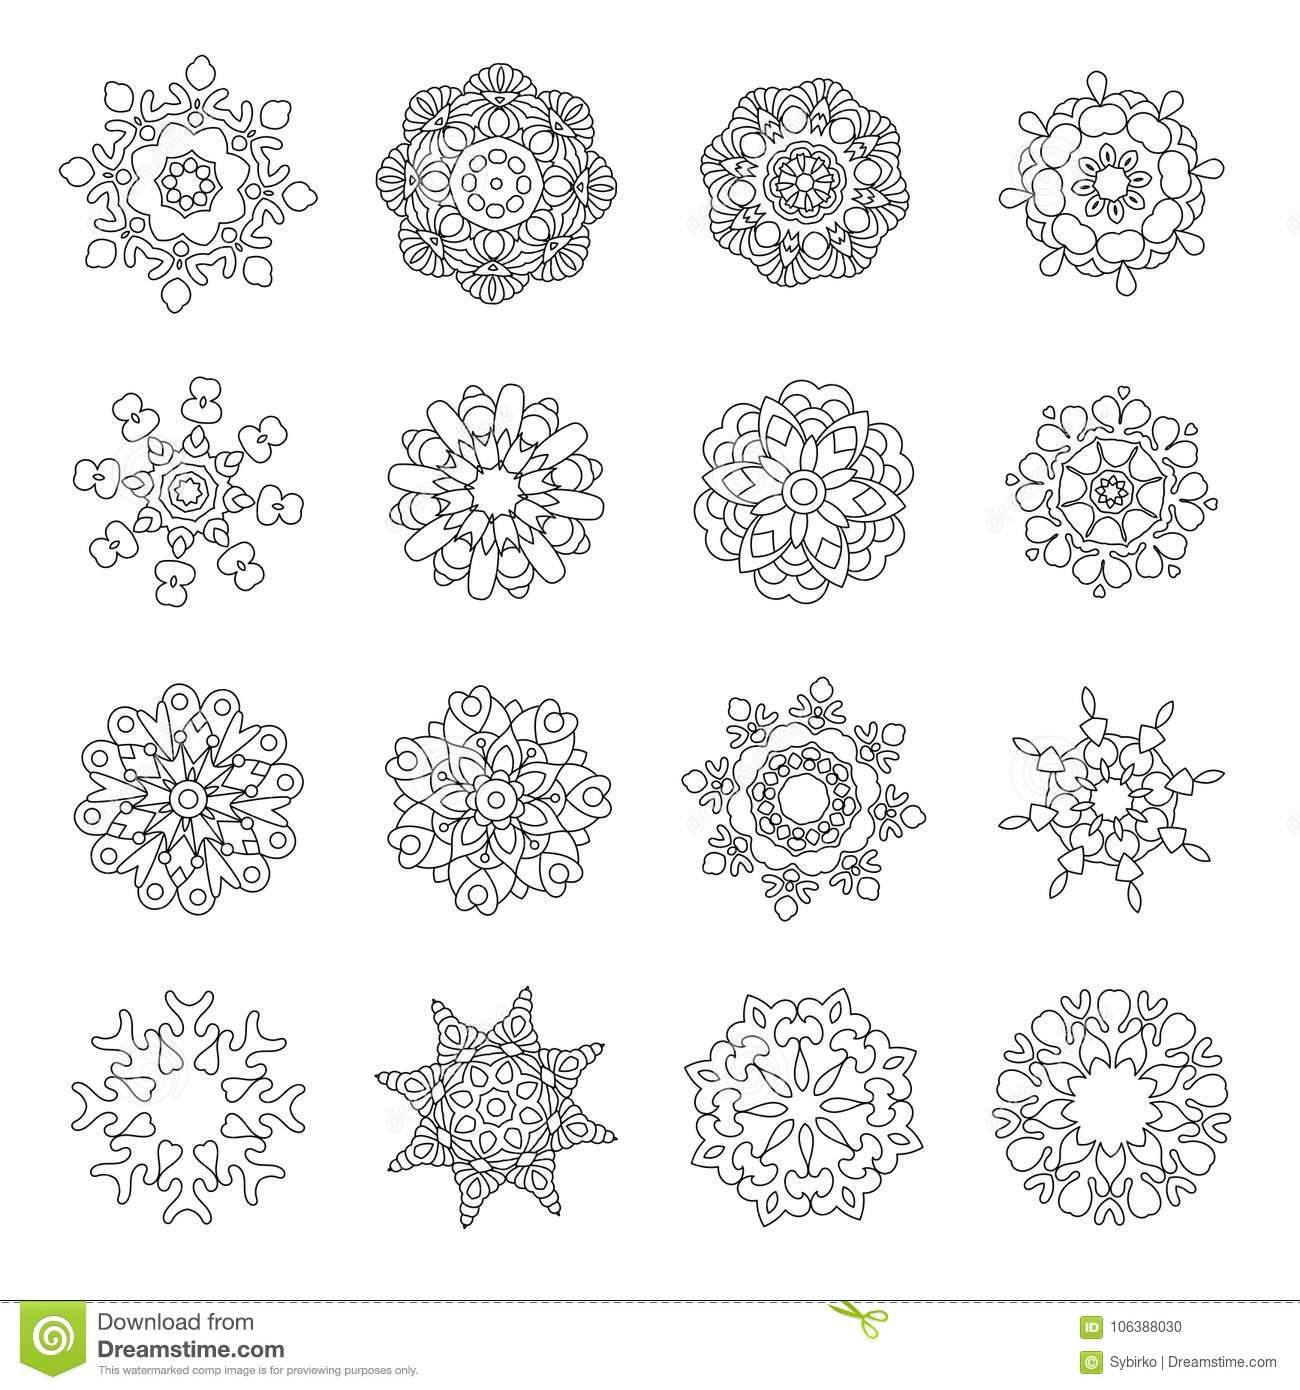 set of christmas doodles snowflakes fractals or mandala icons coloring page with holiday decorations for 2018 happy new year greeting card or adult